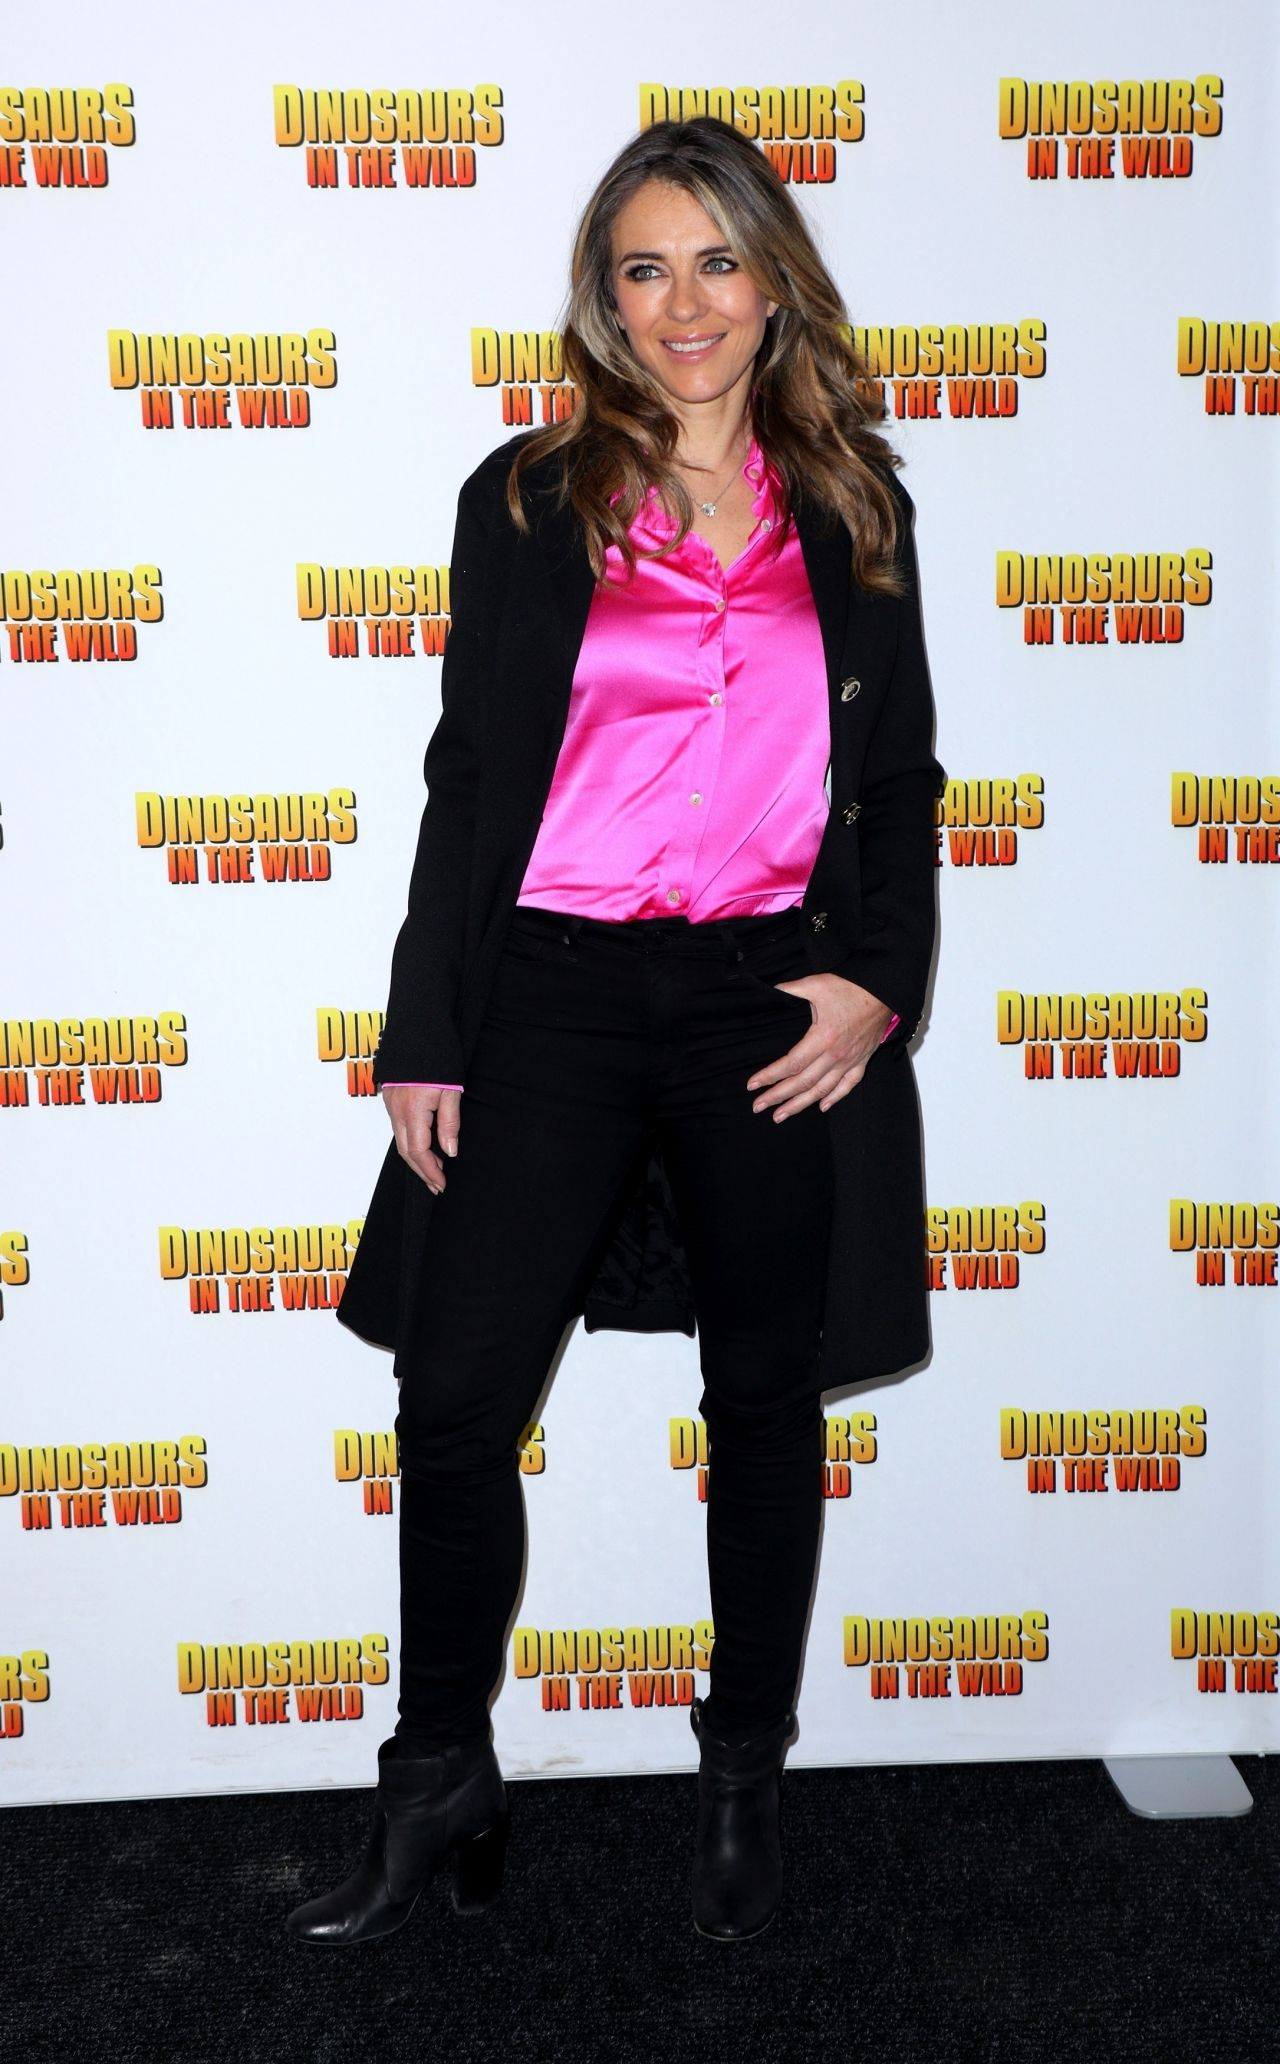 http://celebmafia.com/wp-content/uploads/2018/02/elizabeth-hurley-dinosaurs-in-the-wild-exhibition-in-london-5.jpg